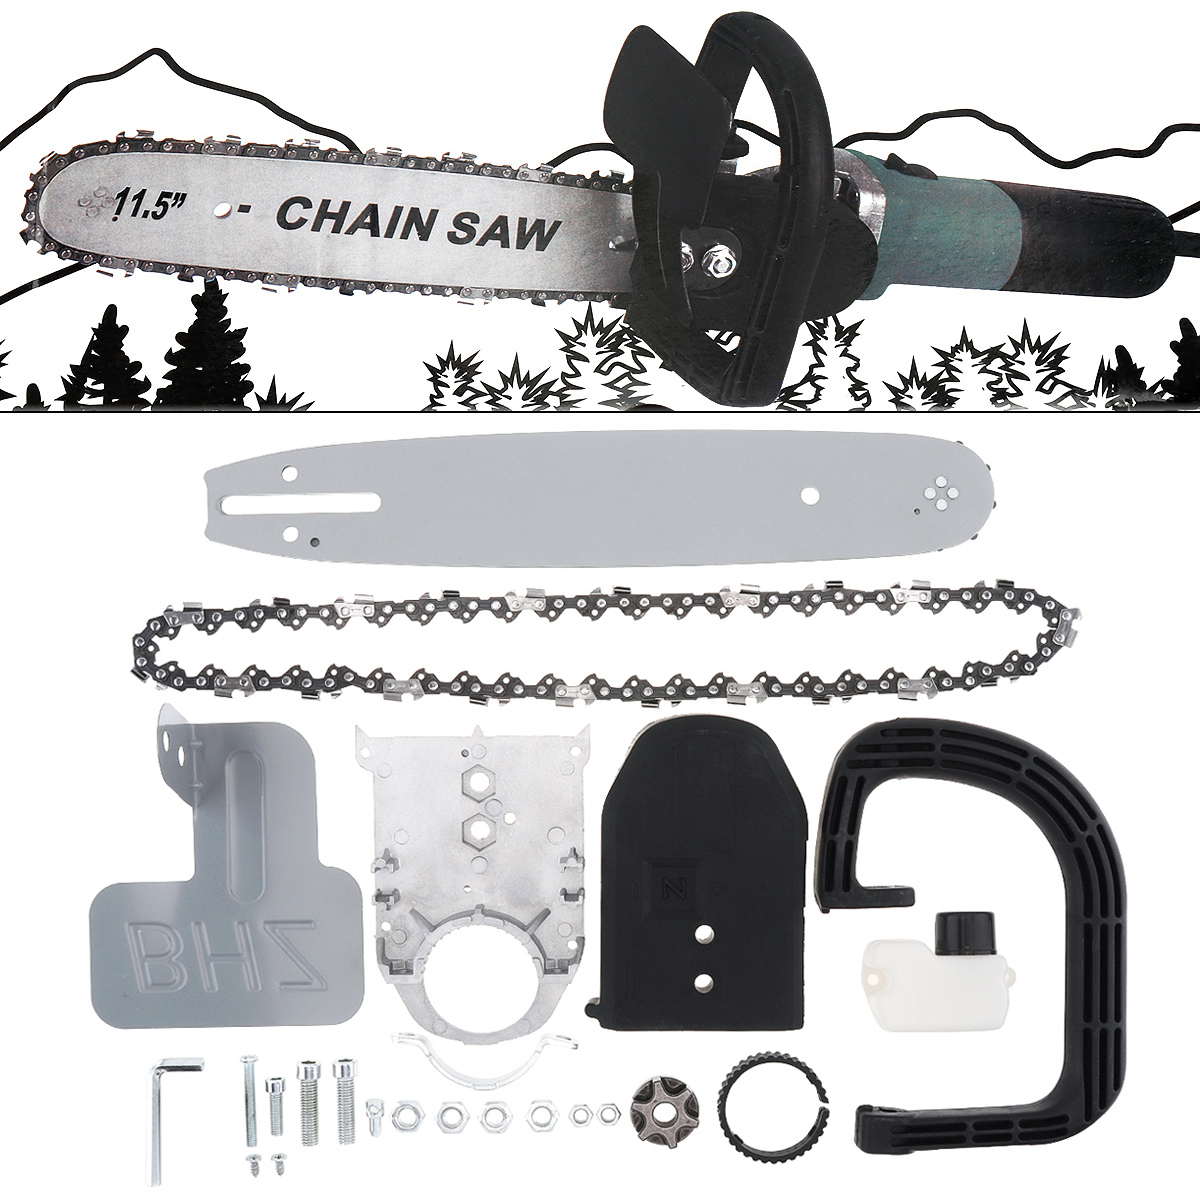 11.5 Inch M10 Upgrade Small Angle Grinder Electric Chain Saw Parts Converter Set Chainsaw Bracket Wood Cutting Tools|Electric Saws| |  - title=